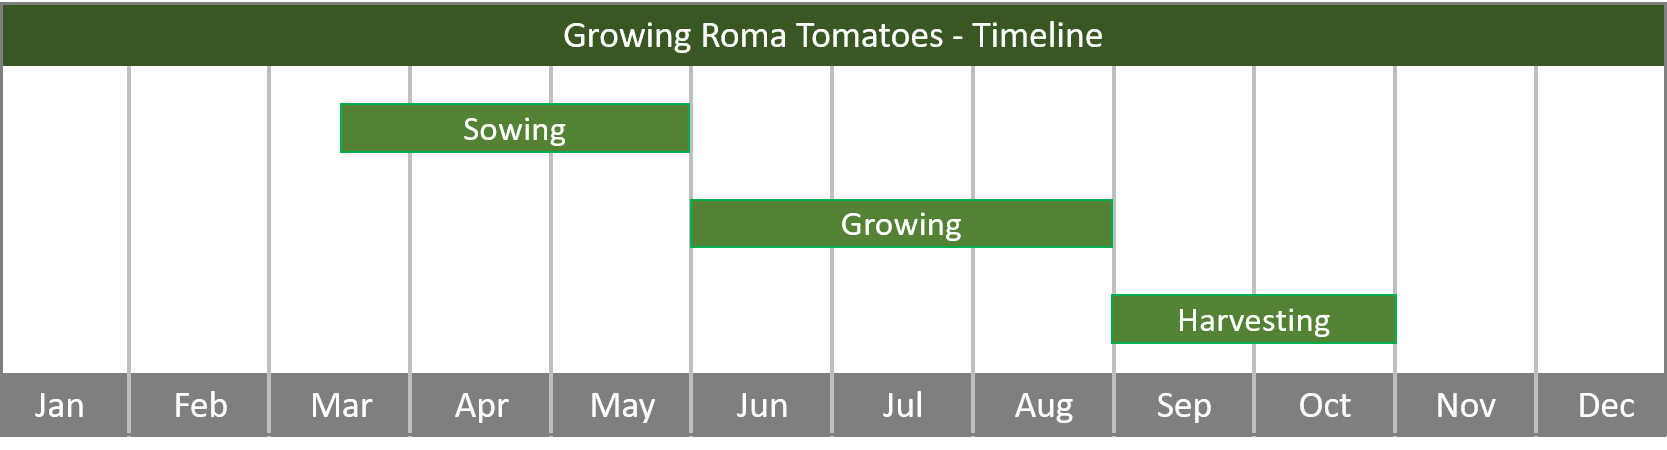 how to grow roma tomatoes from seed to harvest at home timeline